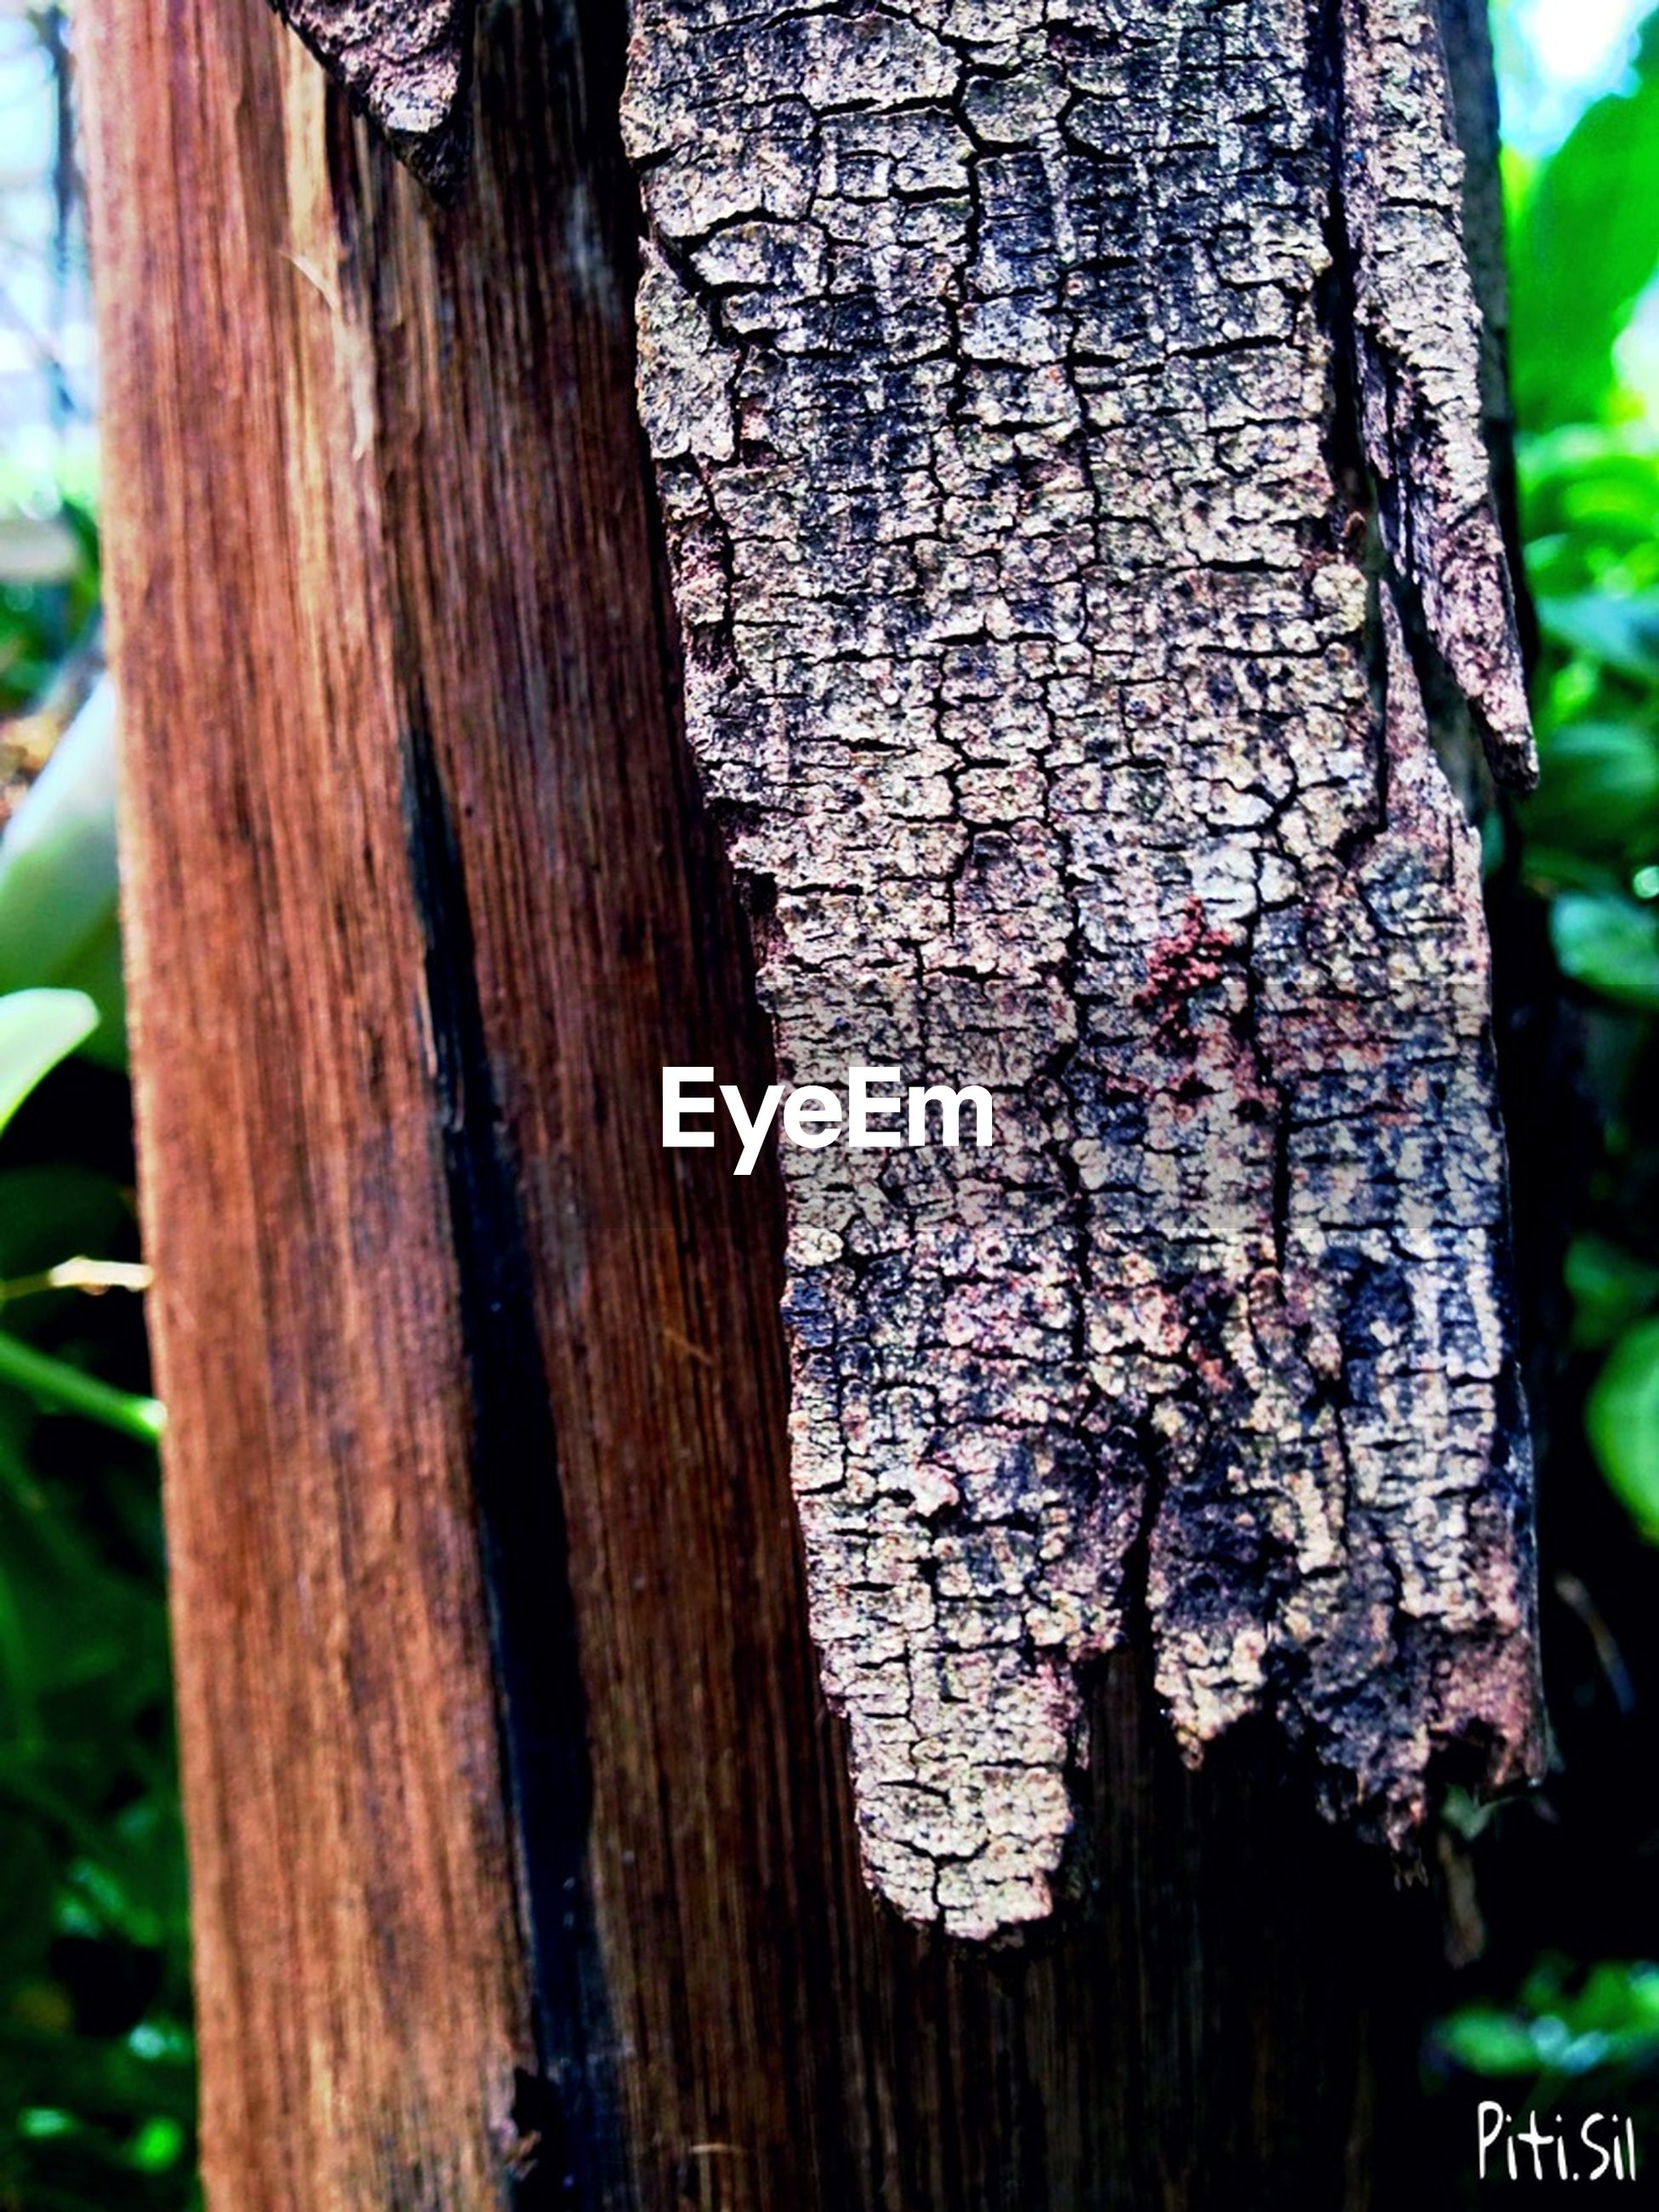 tree trunk, close-up, wood - material, textured, tree, focus on foreground, bark, wooden, wood, growth, day, pattern, outdoors, rough, no people, nature, weathered, plant bark, old, part of